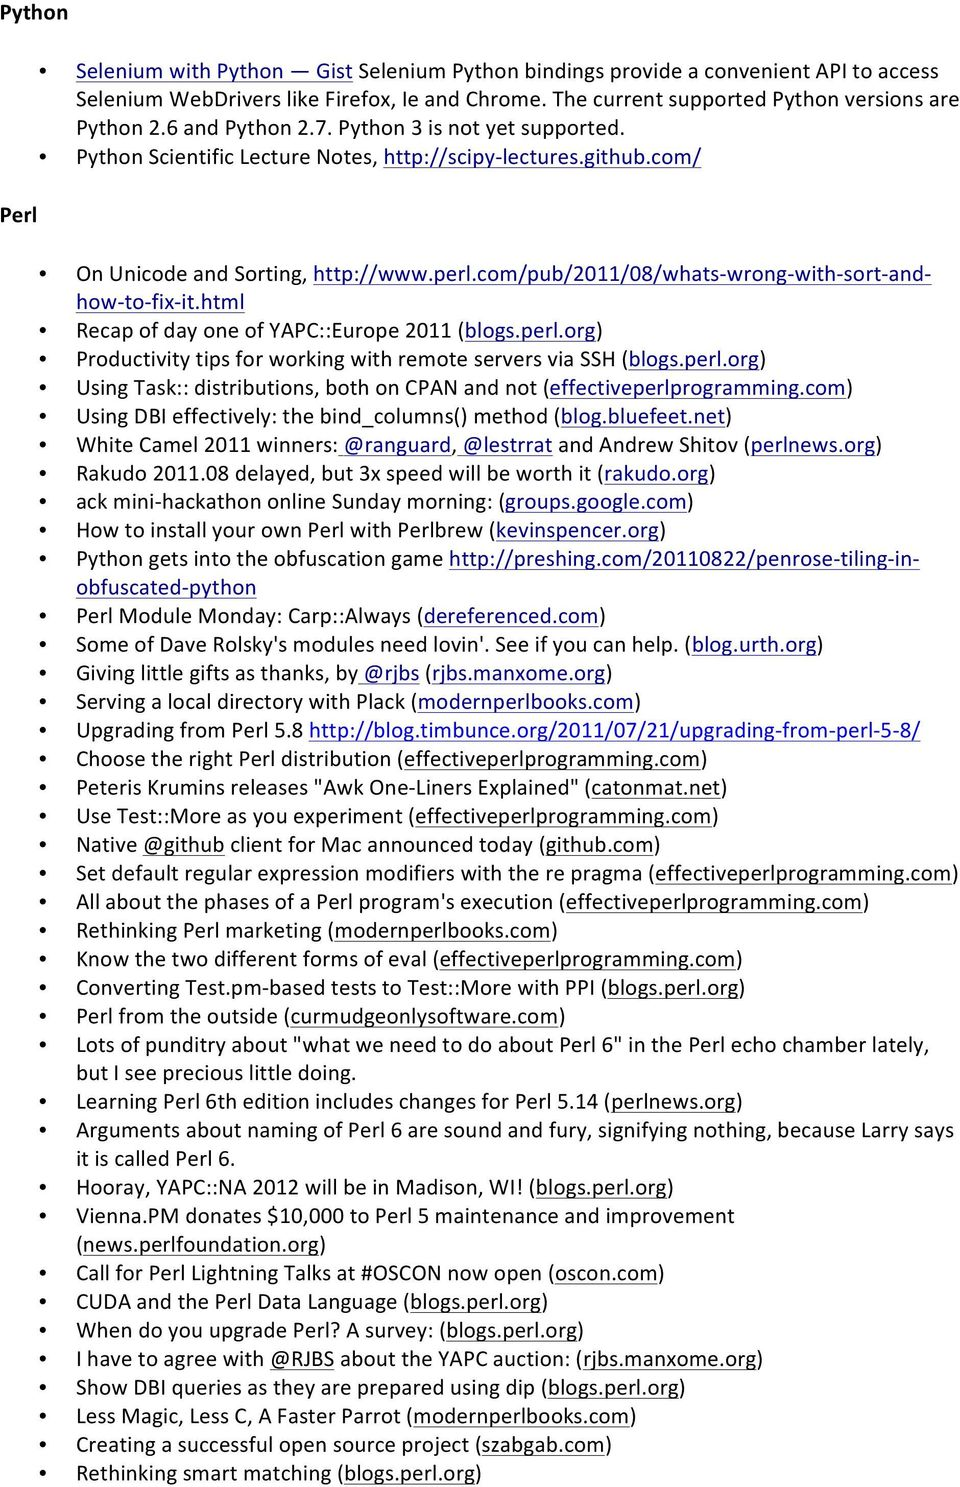 com/pub/2011/08/whats- wrong- with- sort- and- how- to- fix- it.html Recap of day one of YAPC::Europe 2011 (blogs.perl.org) Productivity tips for working with remote servers via SSH (blogs.perl.org) Using Task:: distributions, both on CPAN and not (effectiveperlprogramming.